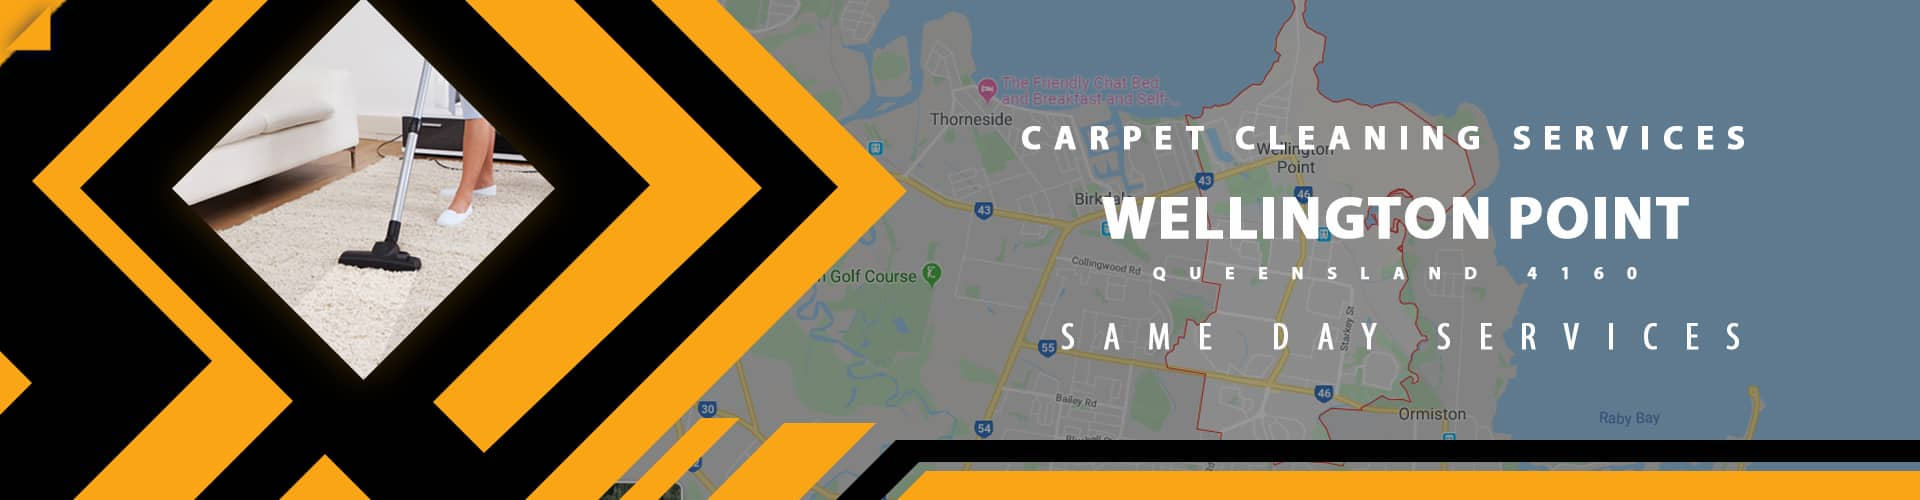 Carpet Cleaning Wellington Point